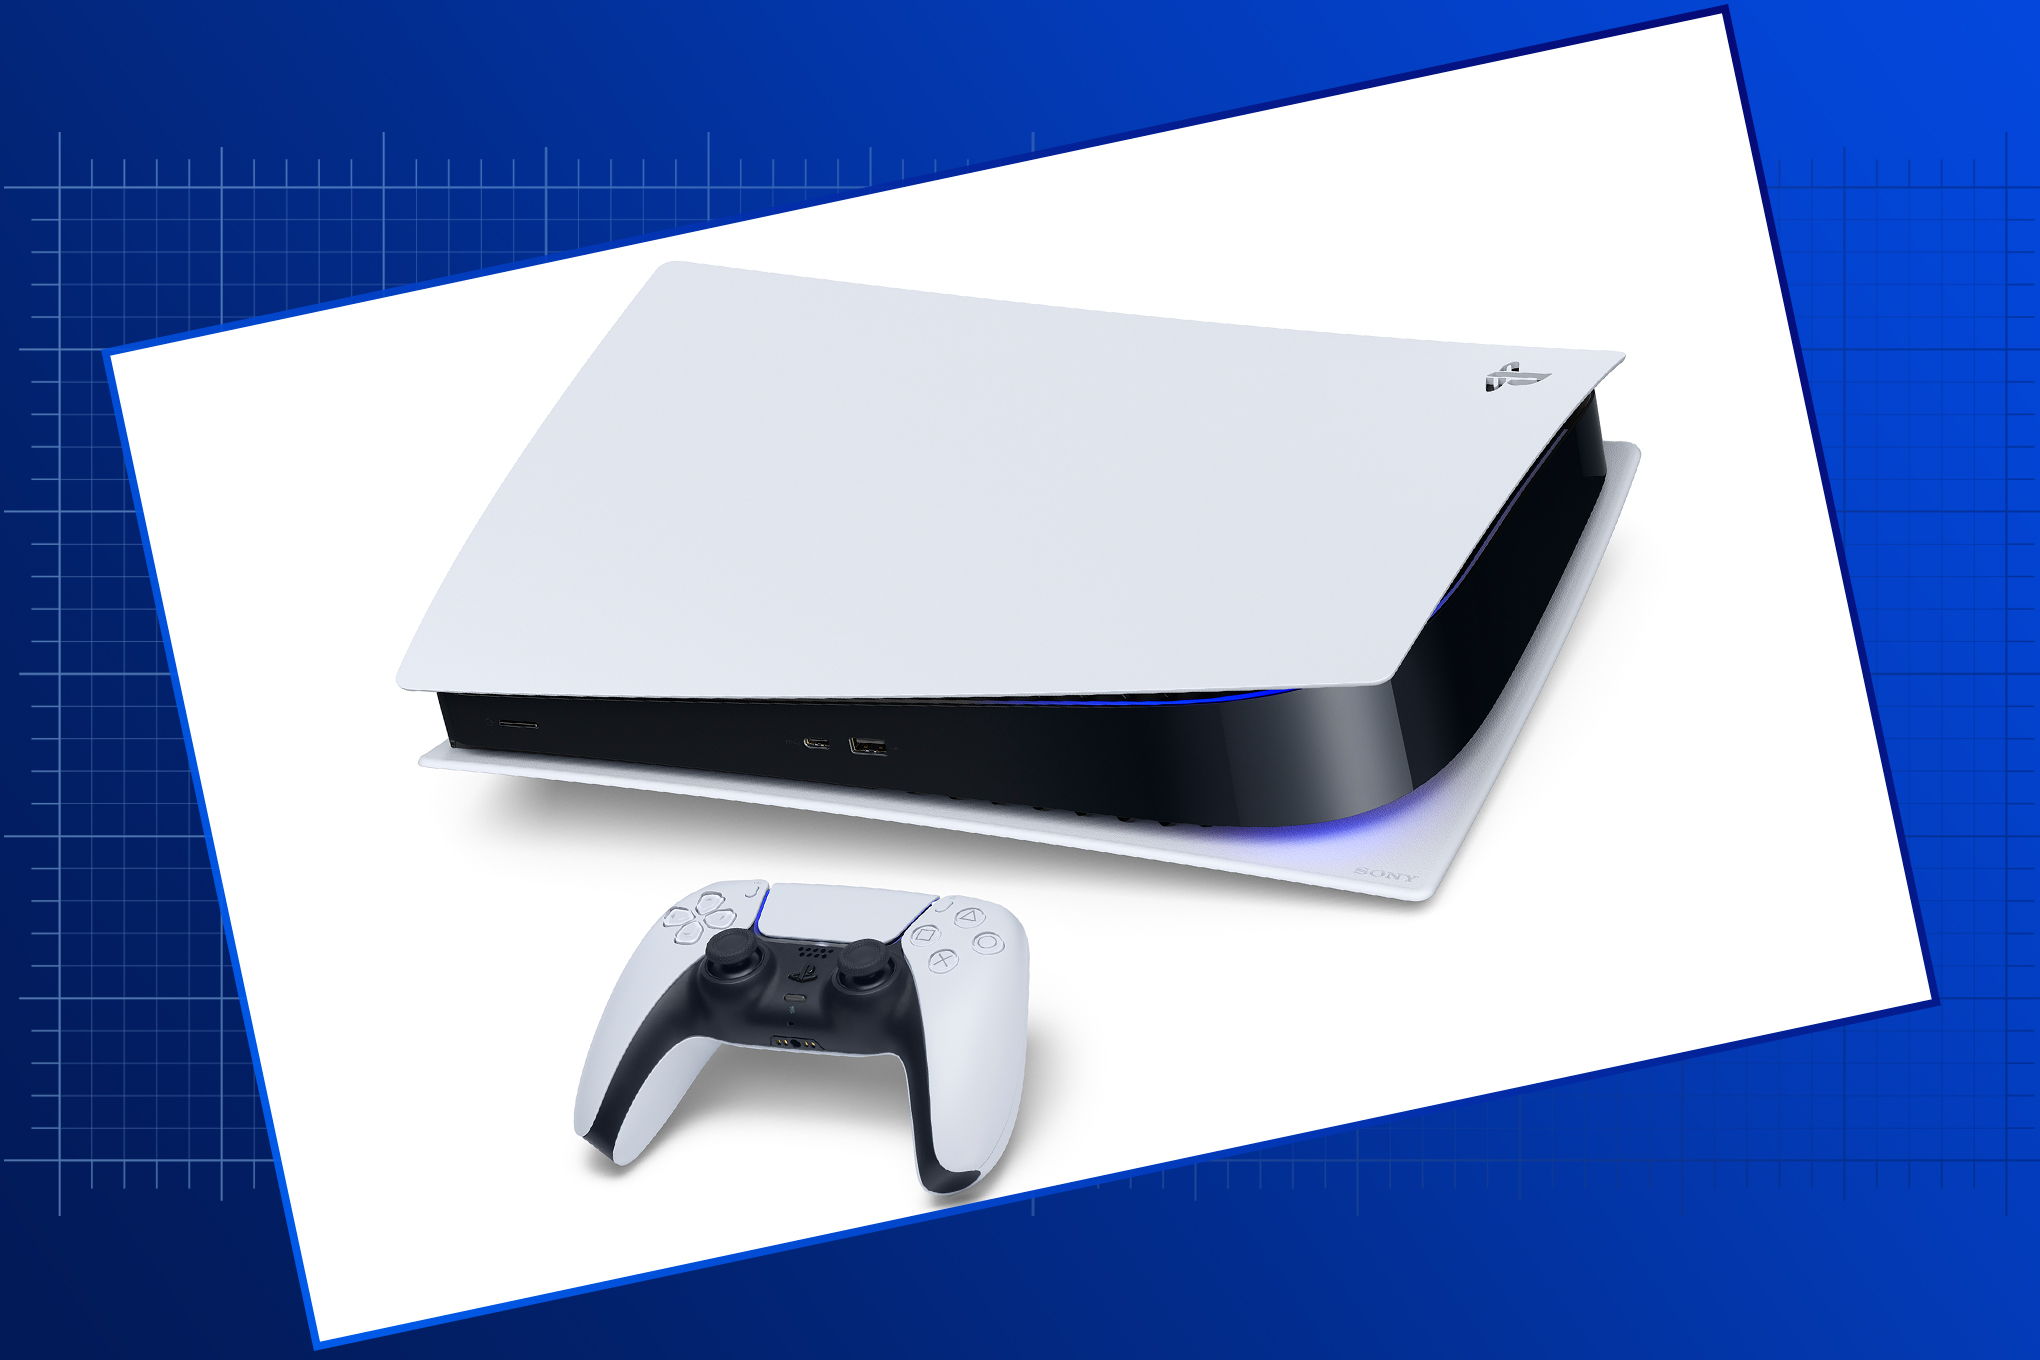 Sony PS5 console and controller on a graduated blue graphic background